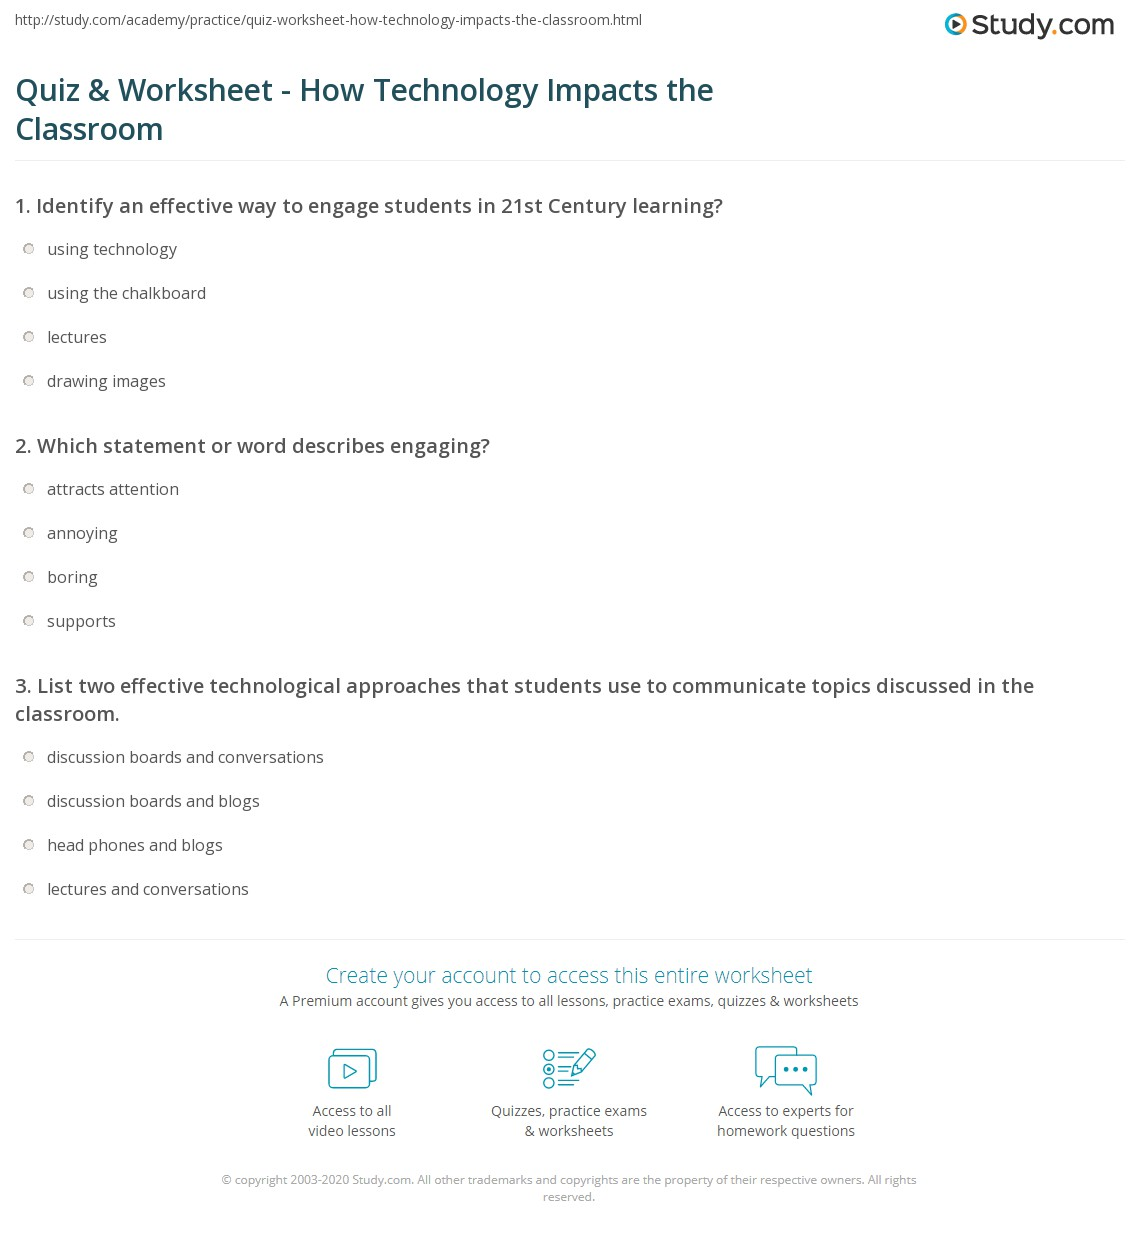 Quiz & Worksheet - How Technology Impacts the Classroom